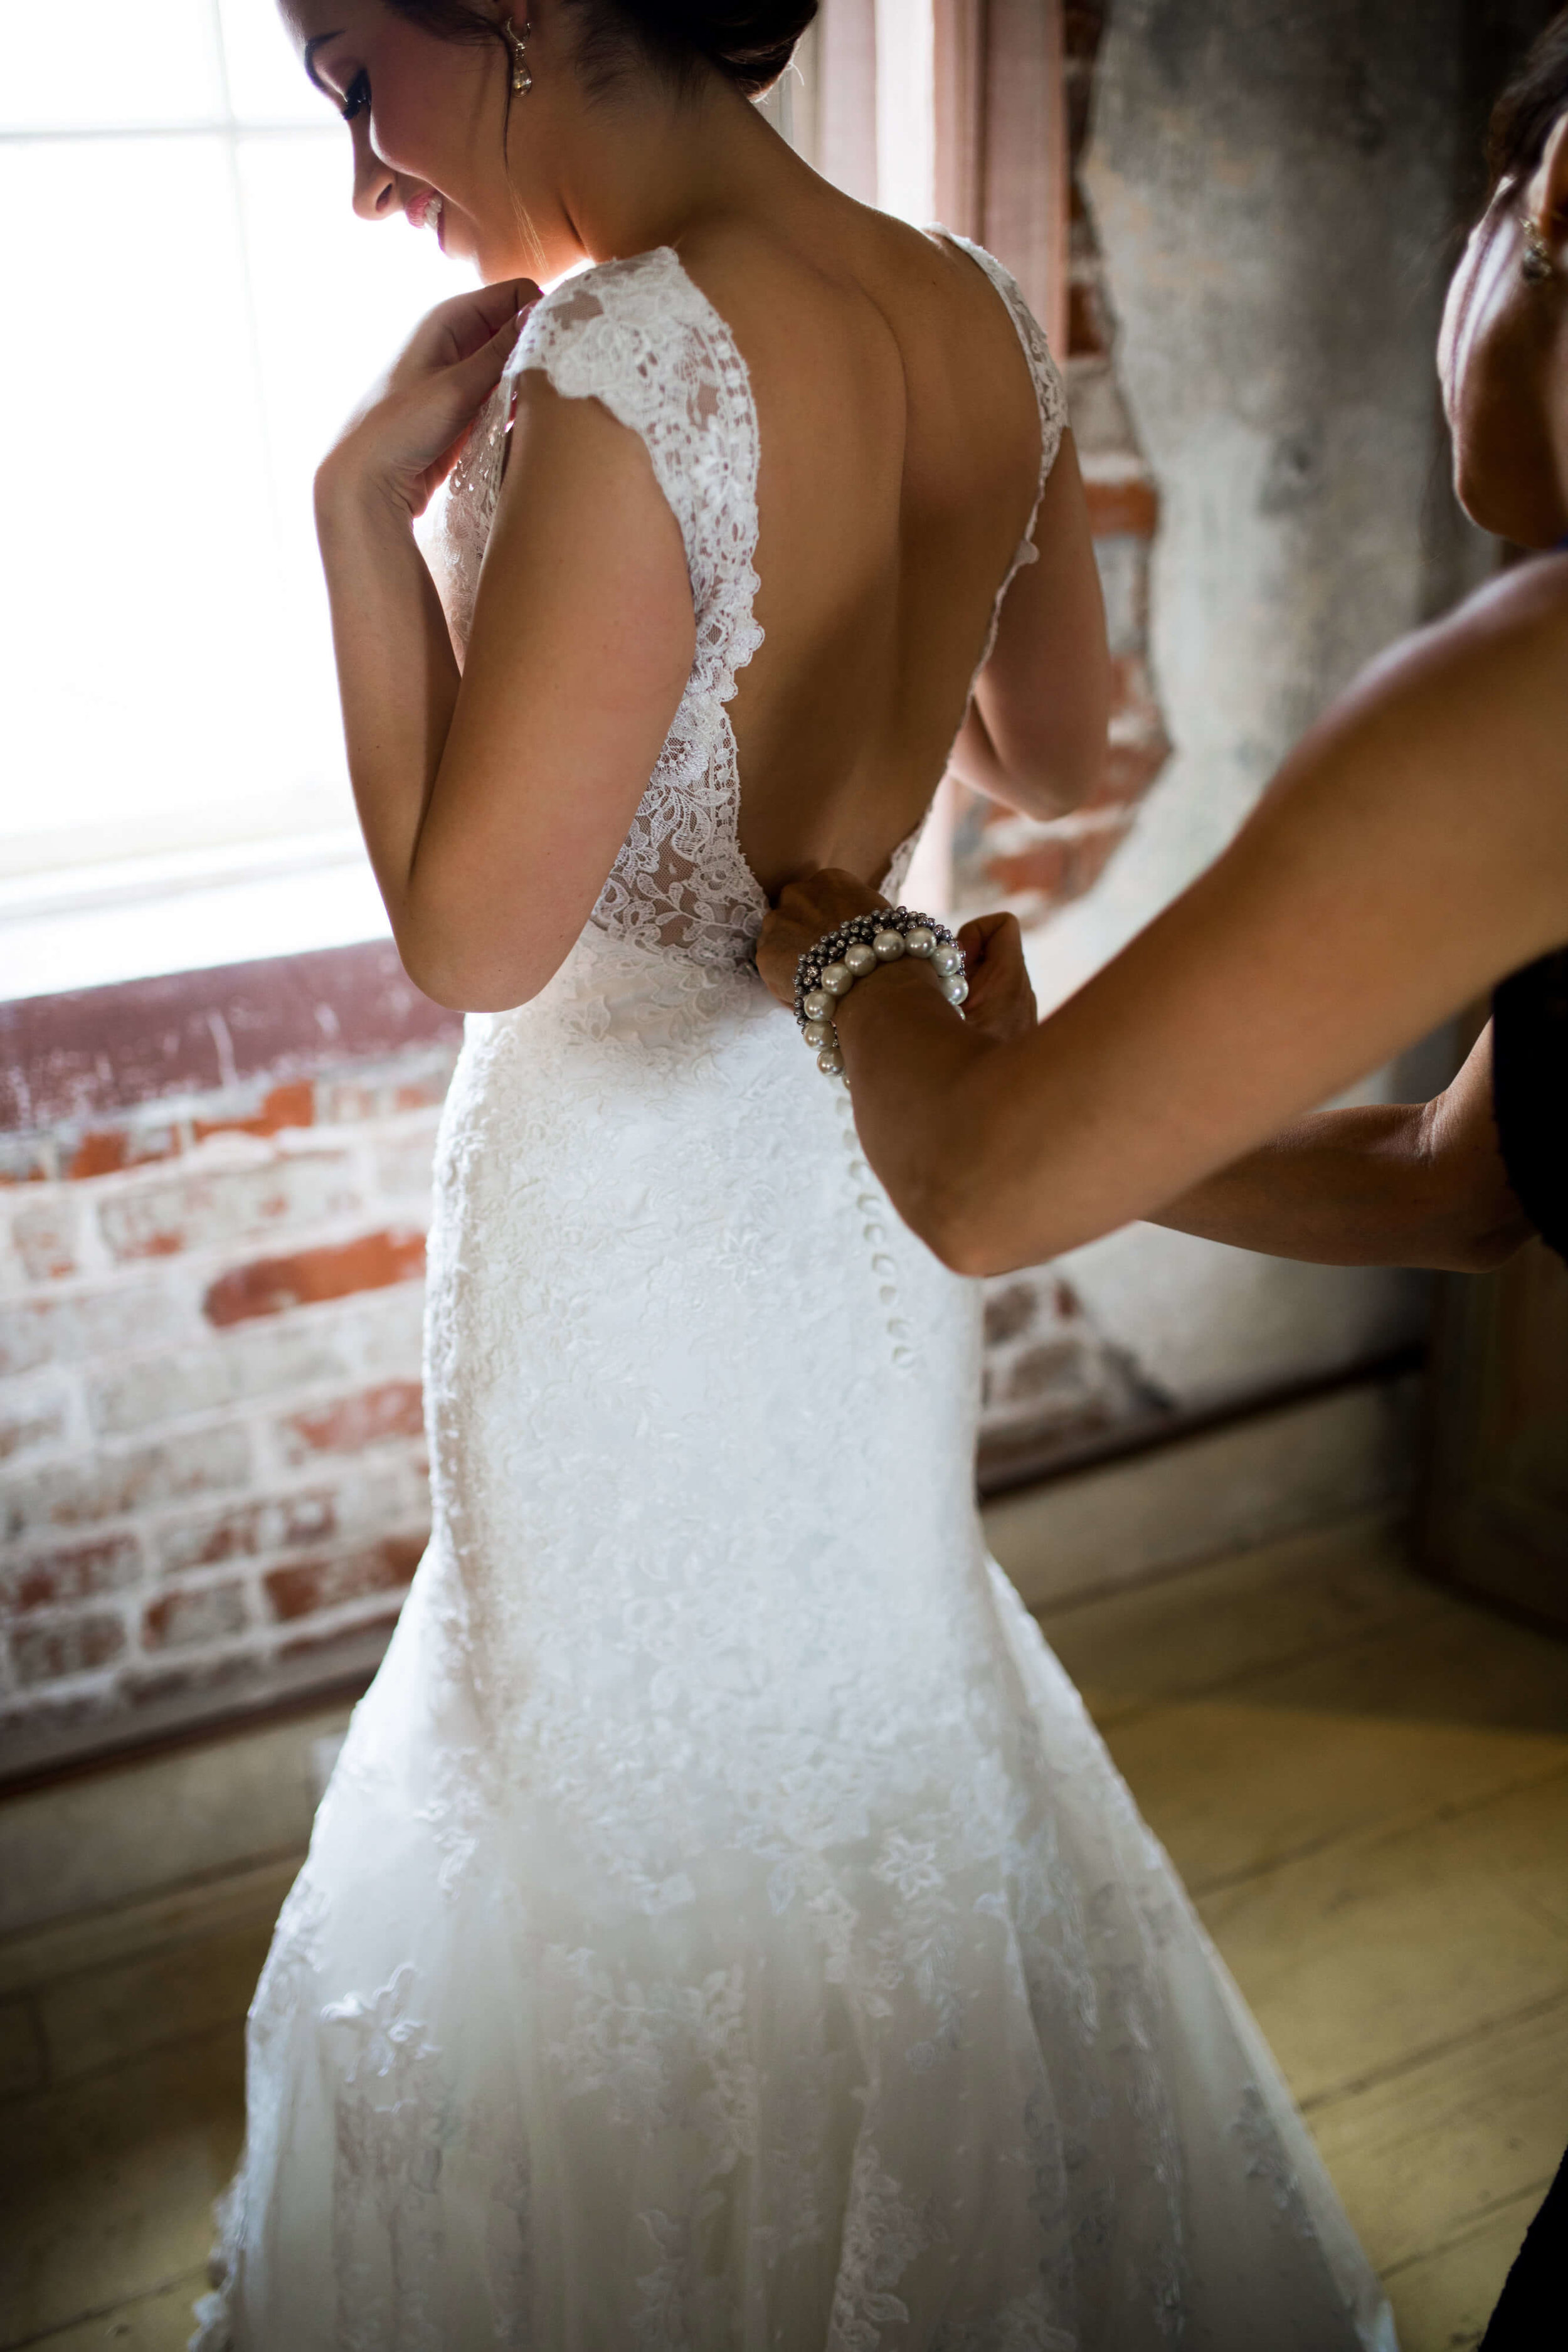 bride getting into her dress, cap sleeves Studio KH wedding photographer | Sixpence Events and Planning, free wedding blog, free wedding help, free wedding advice |